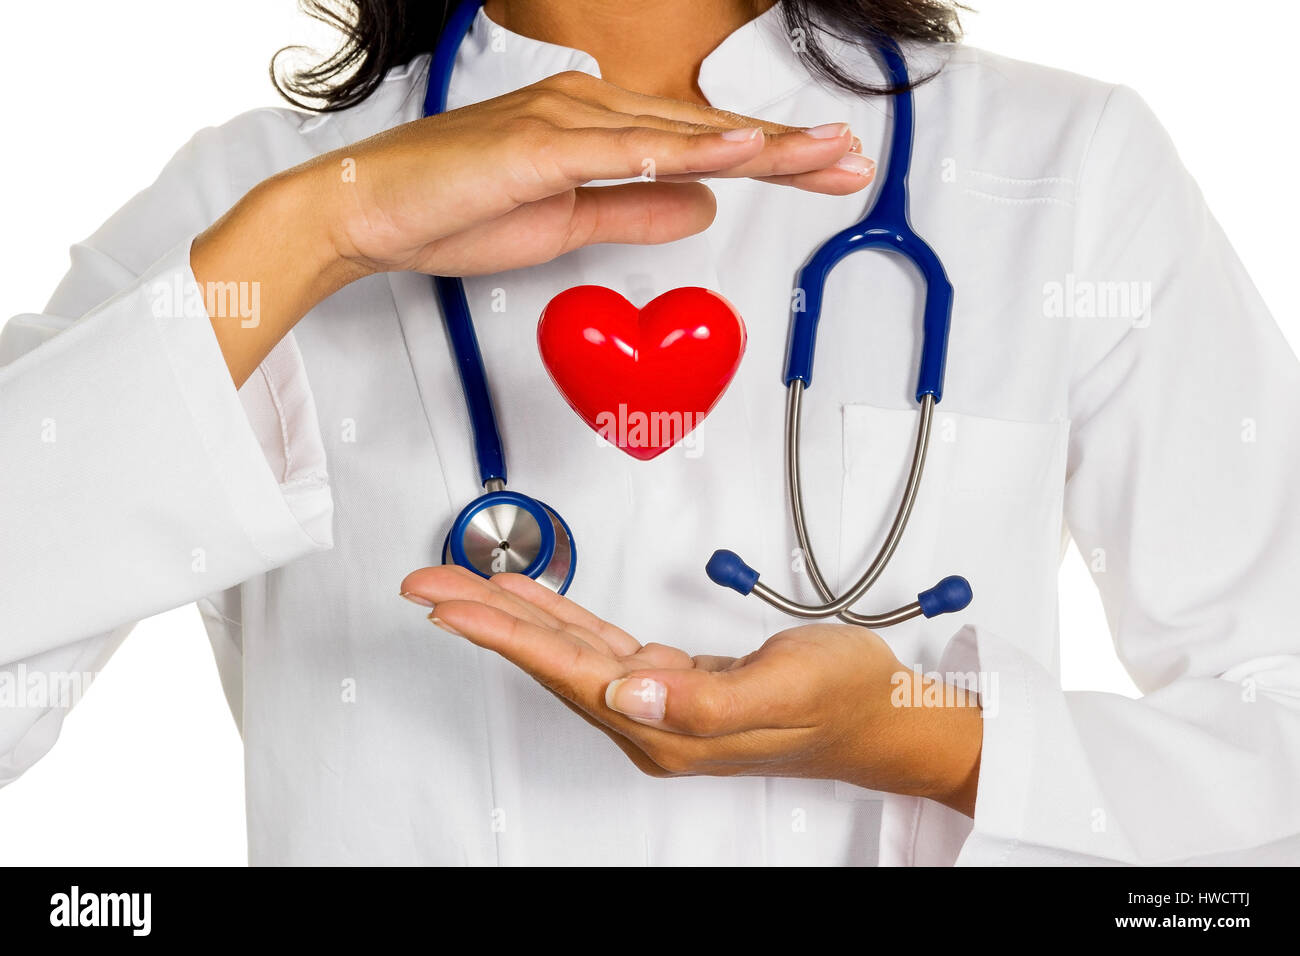 A young doctor (internist) holds a heart symbolically in the hand., Eine junge Ärztin (Internistin) hält - Stock Image